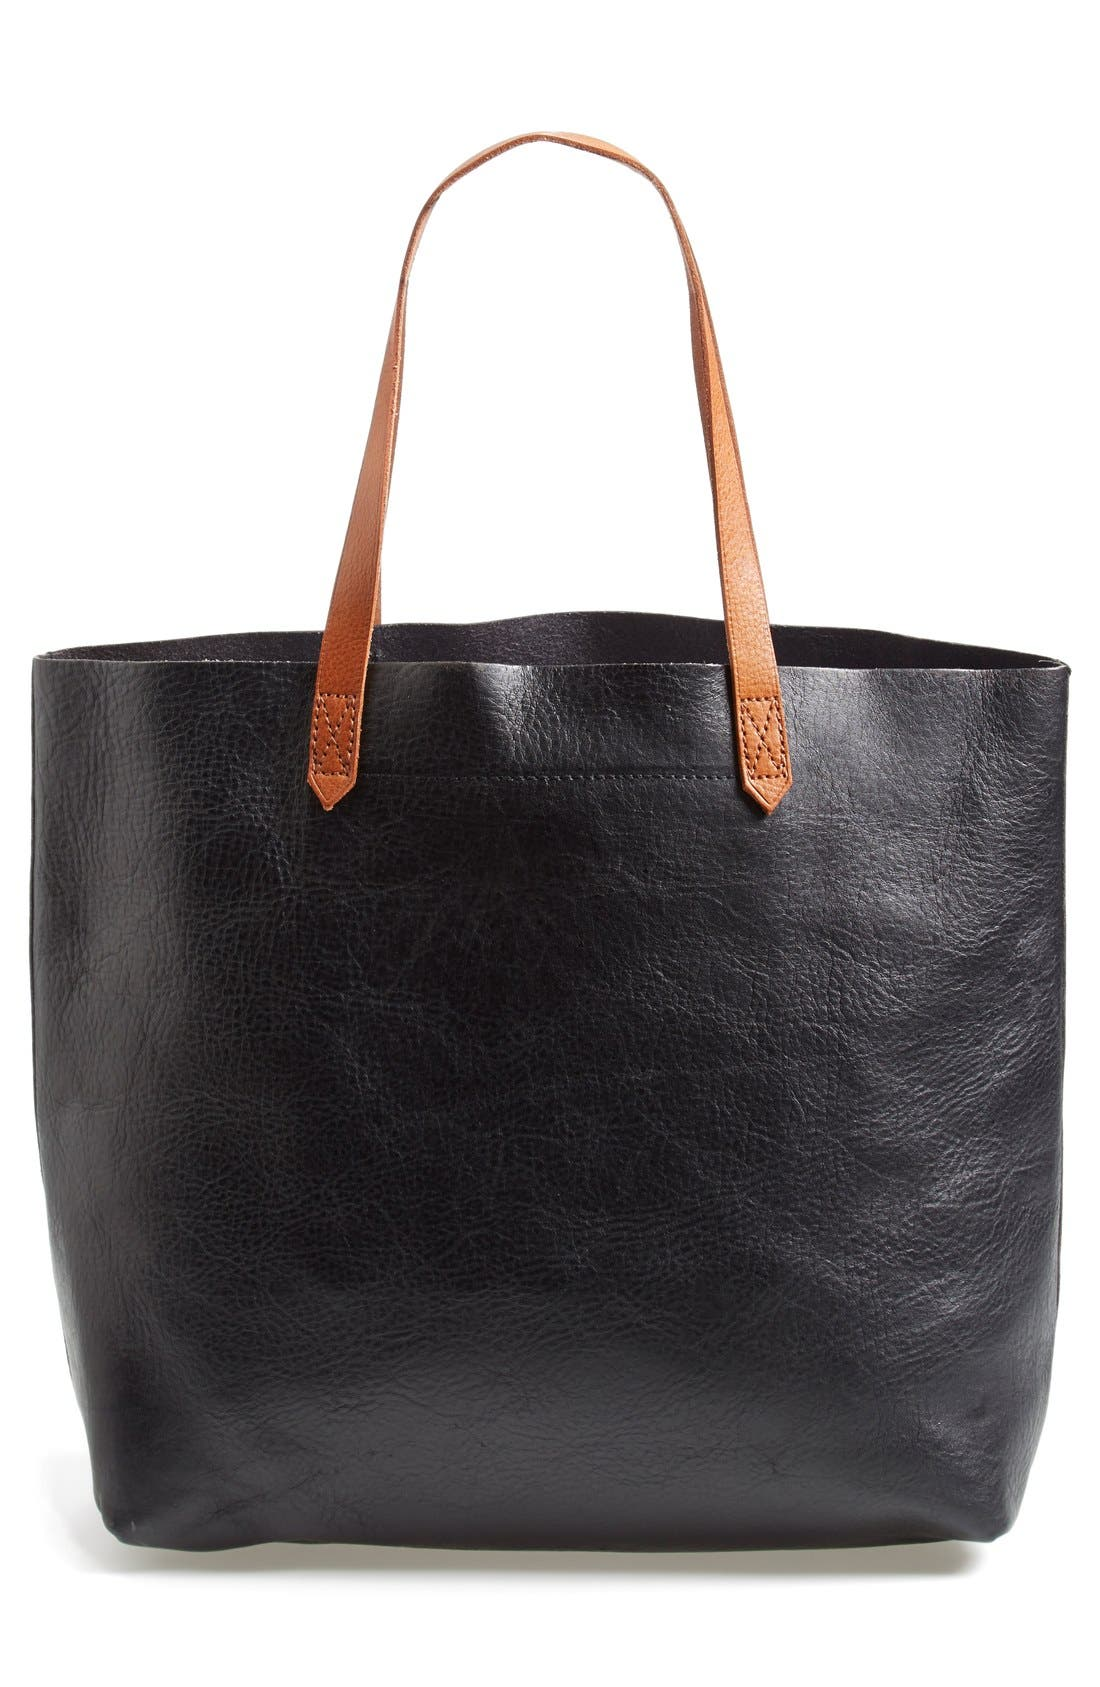 Madewell 'The Transport' Leather Tote